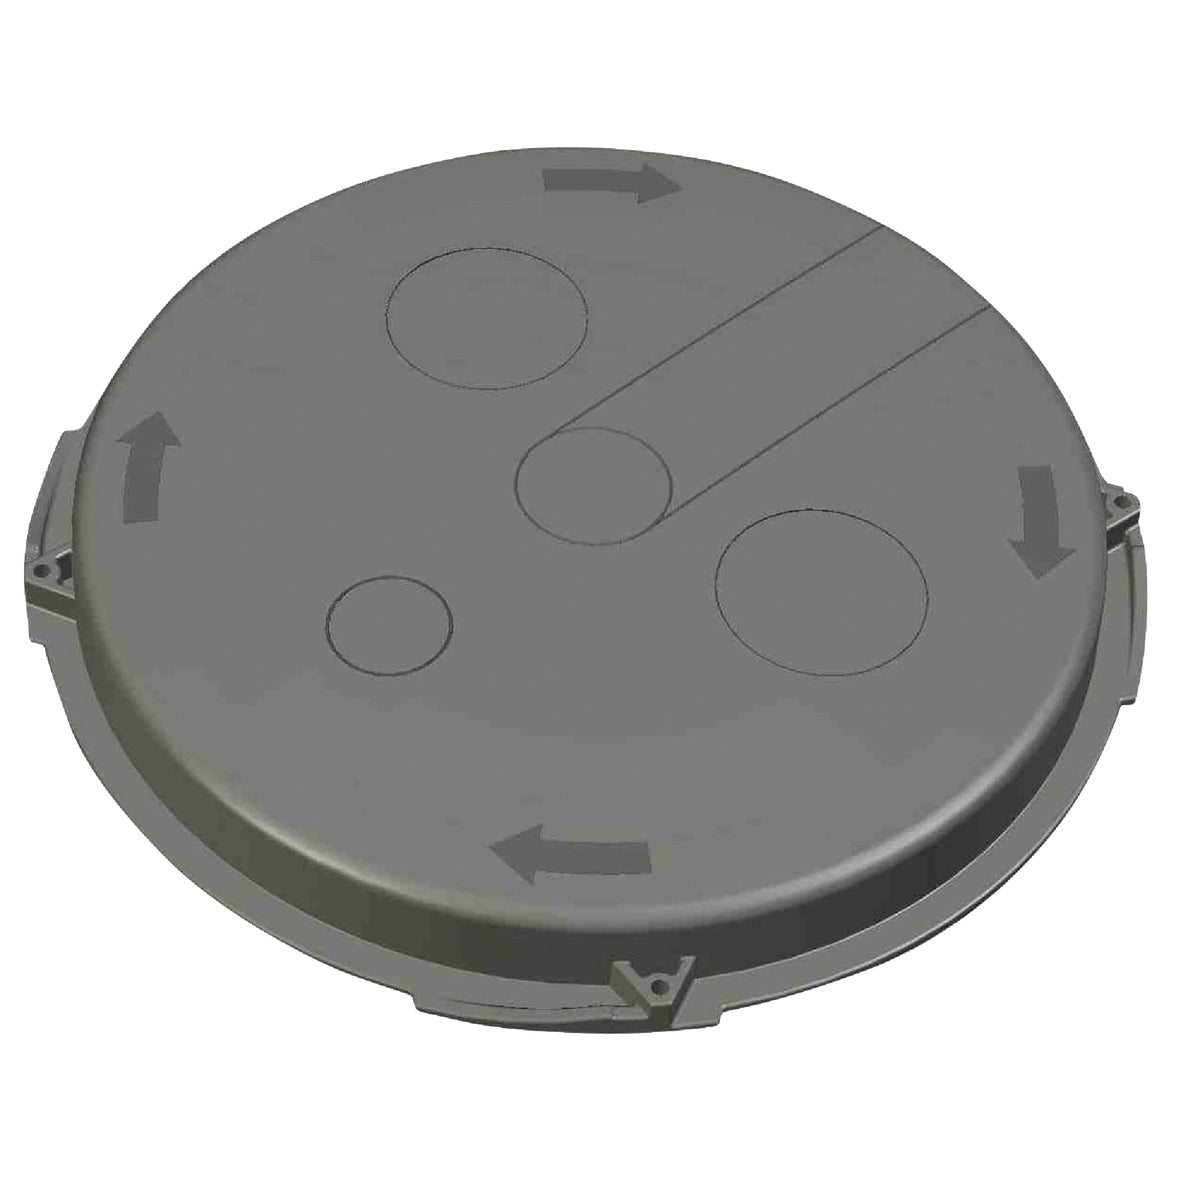 "19"" HVY DUTY SUMP LID - 1537ADL by Advanced Drainage Sy"